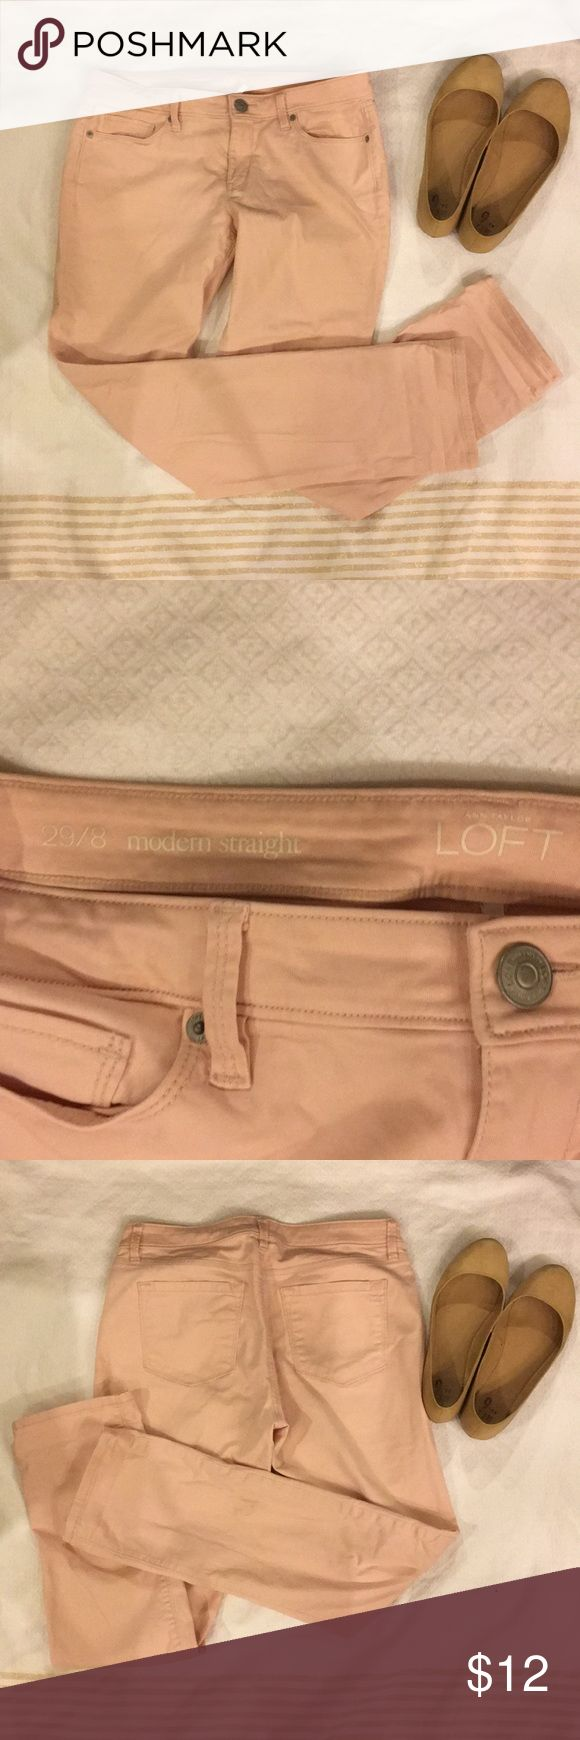 LOFT Light Pink Pants Fun colored jeans! Very soft material and have a straight leg. Adorable with flats or sneakers! LOFT Pants Straight Leg